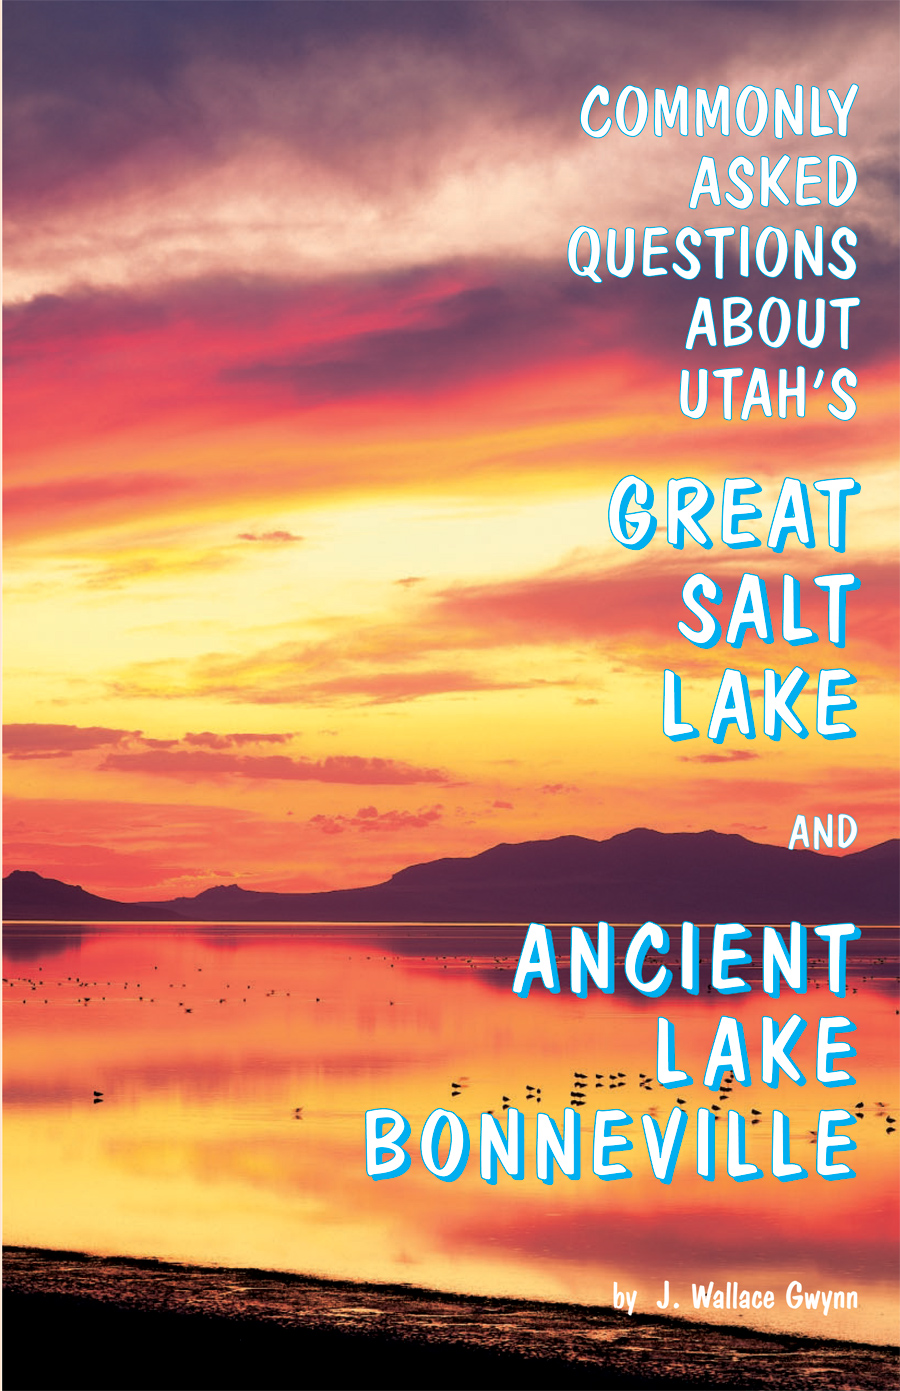 PI-39:Commonly Asked Questions About Utah's Great Salt Lake and Ancient Lake Bonneville